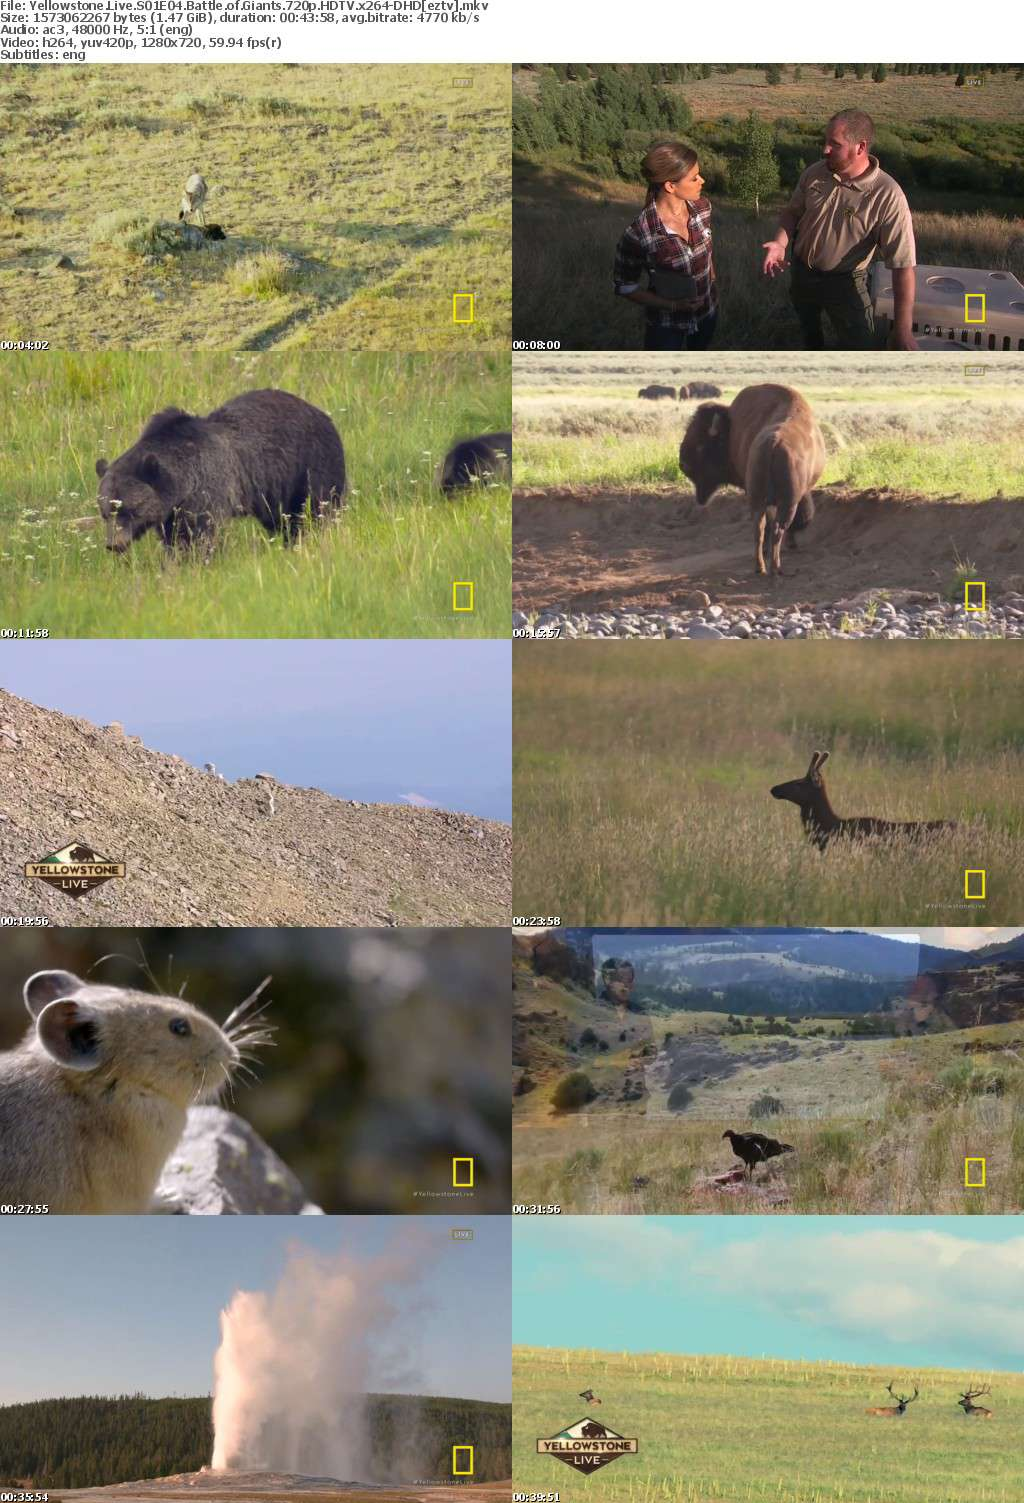 Yellowstone Live S01E04 Battle of Giants 720p HDTV x264-DHD